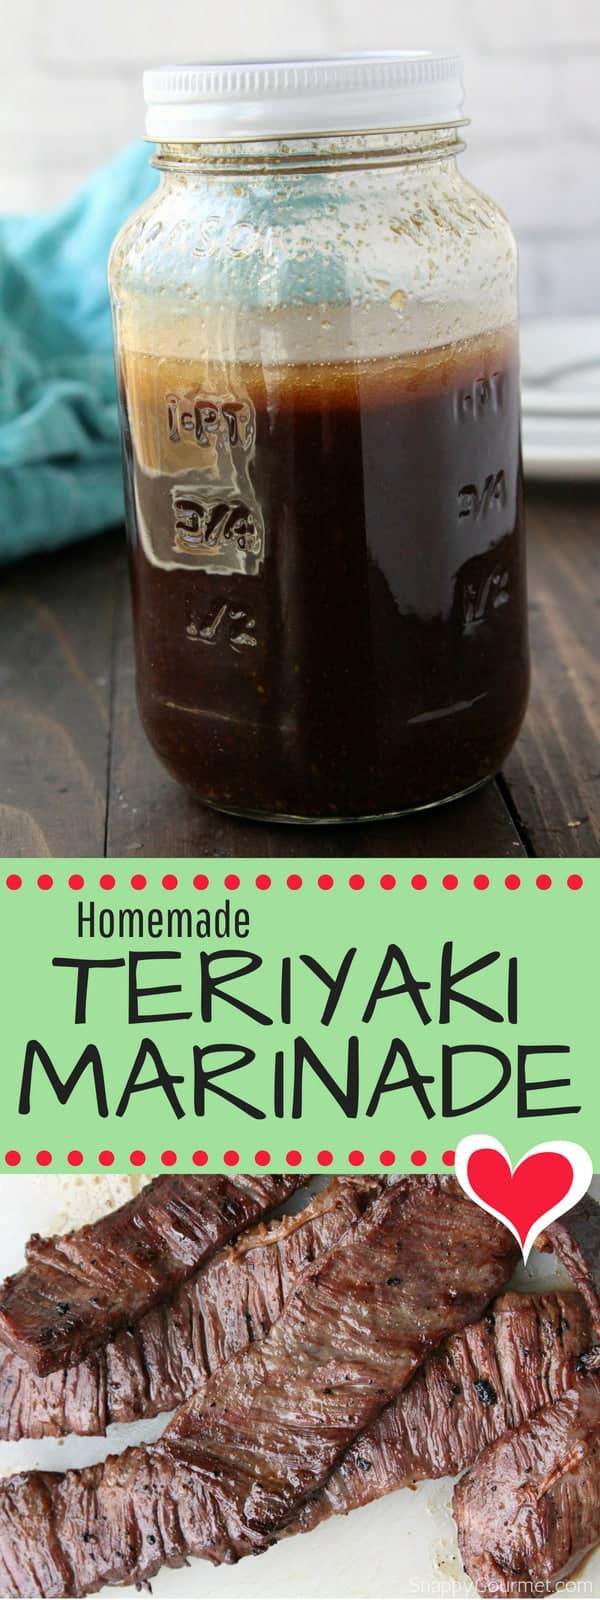 Homemade Teriyaki Marinade recipe for beef, chicken or pork